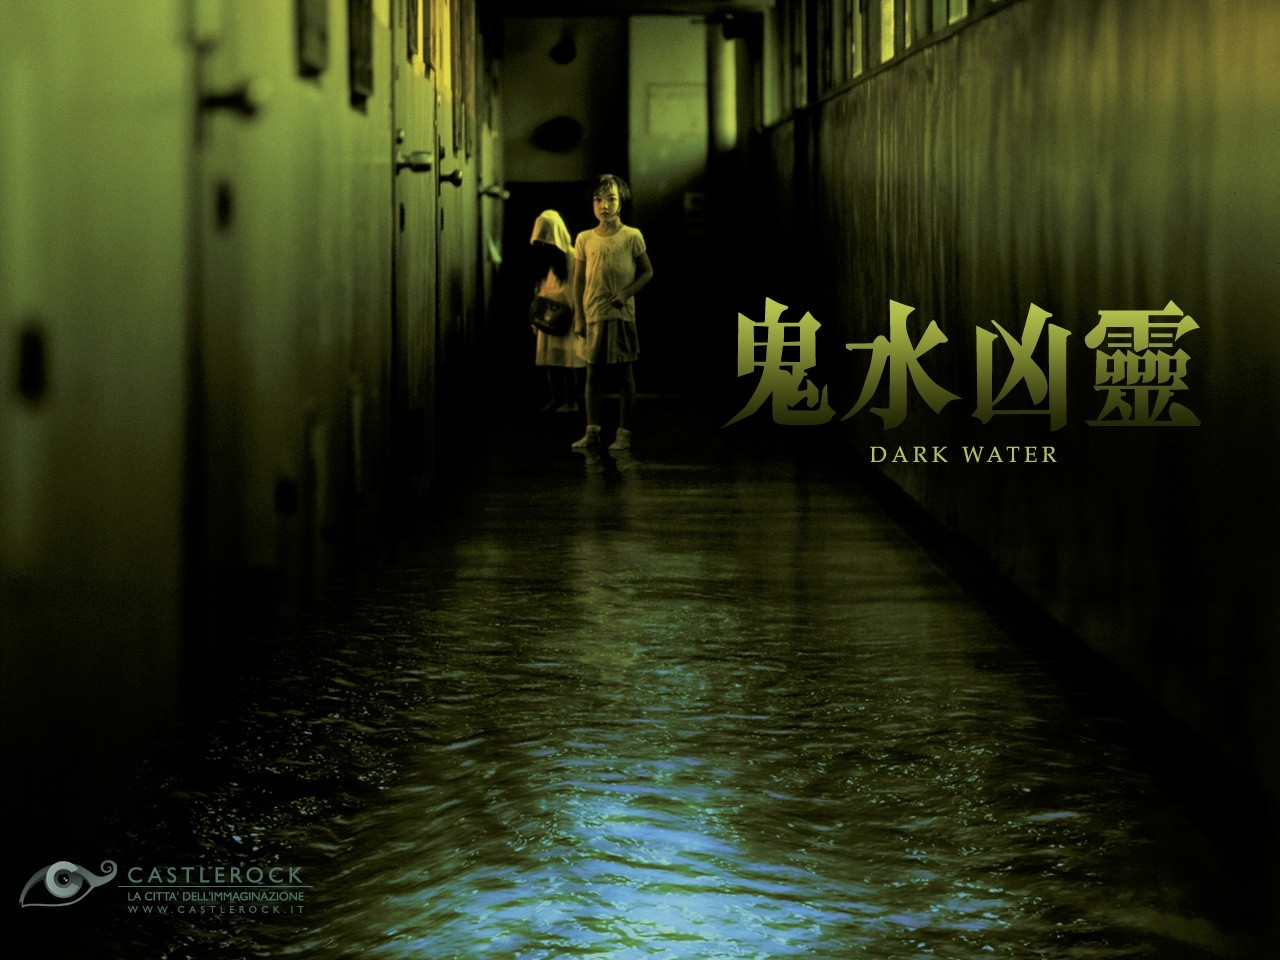 Wallpaper del film Dark Water